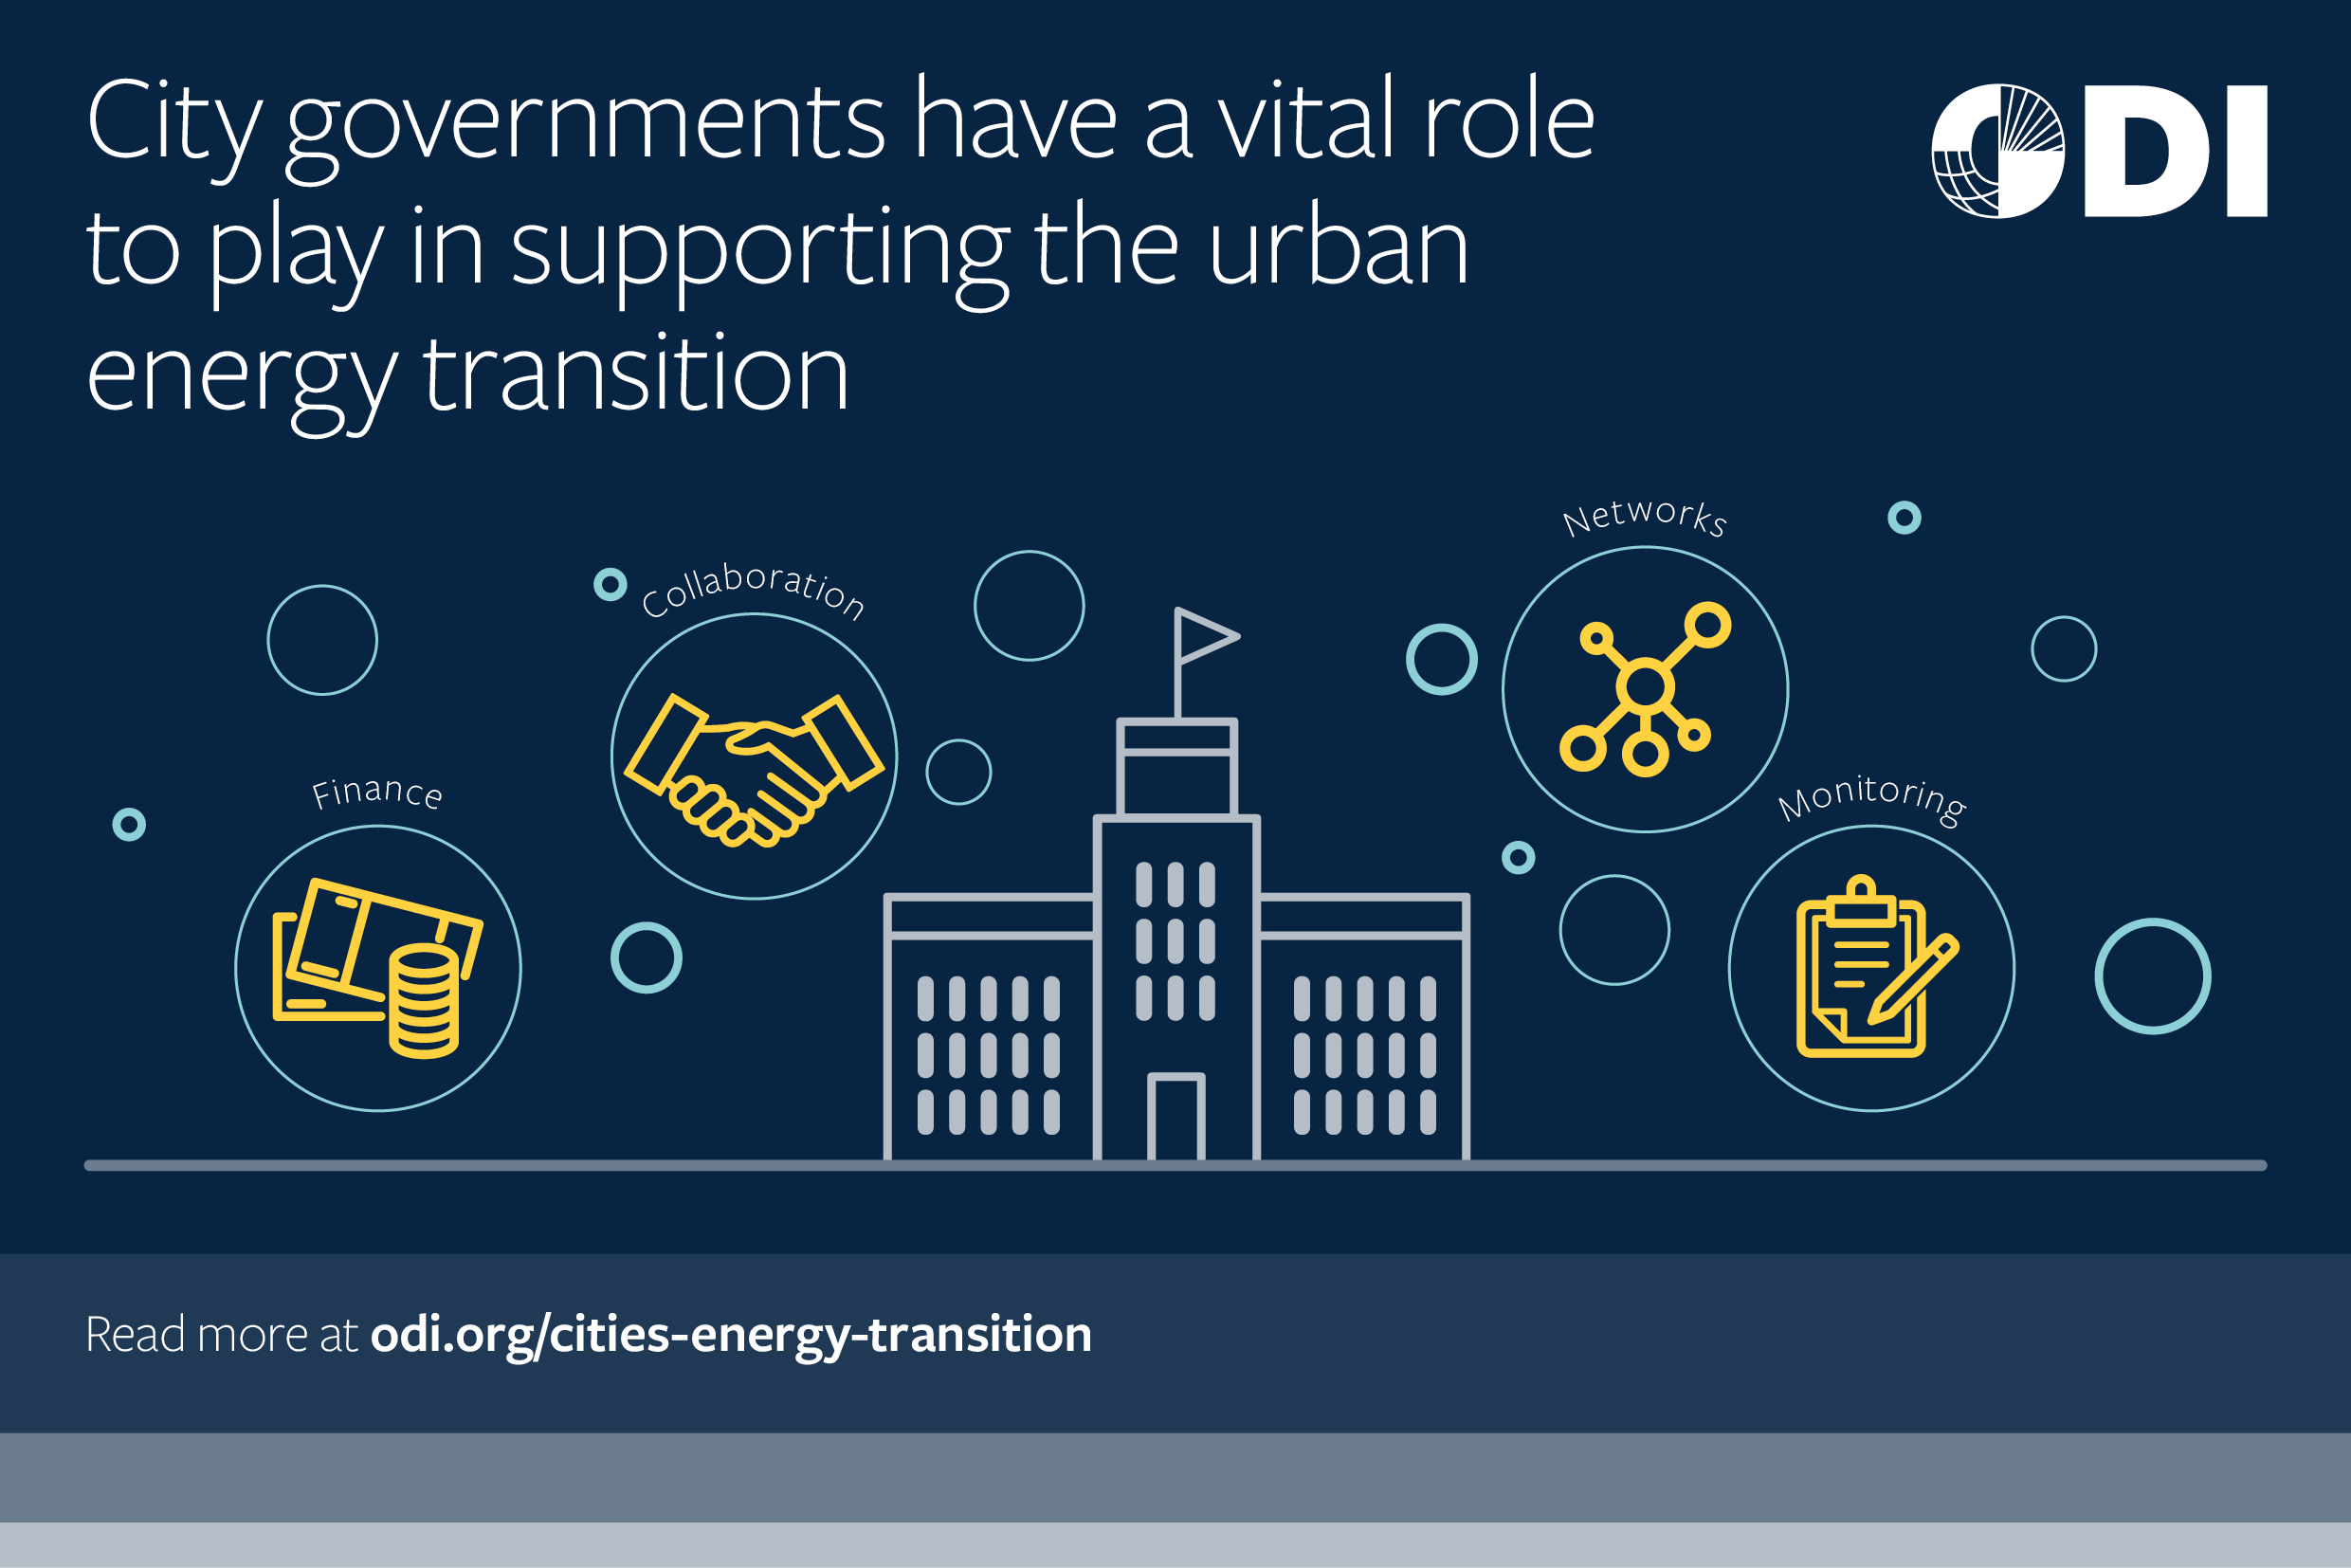 City governments have a vital role to play in supporting the urban energy transition.